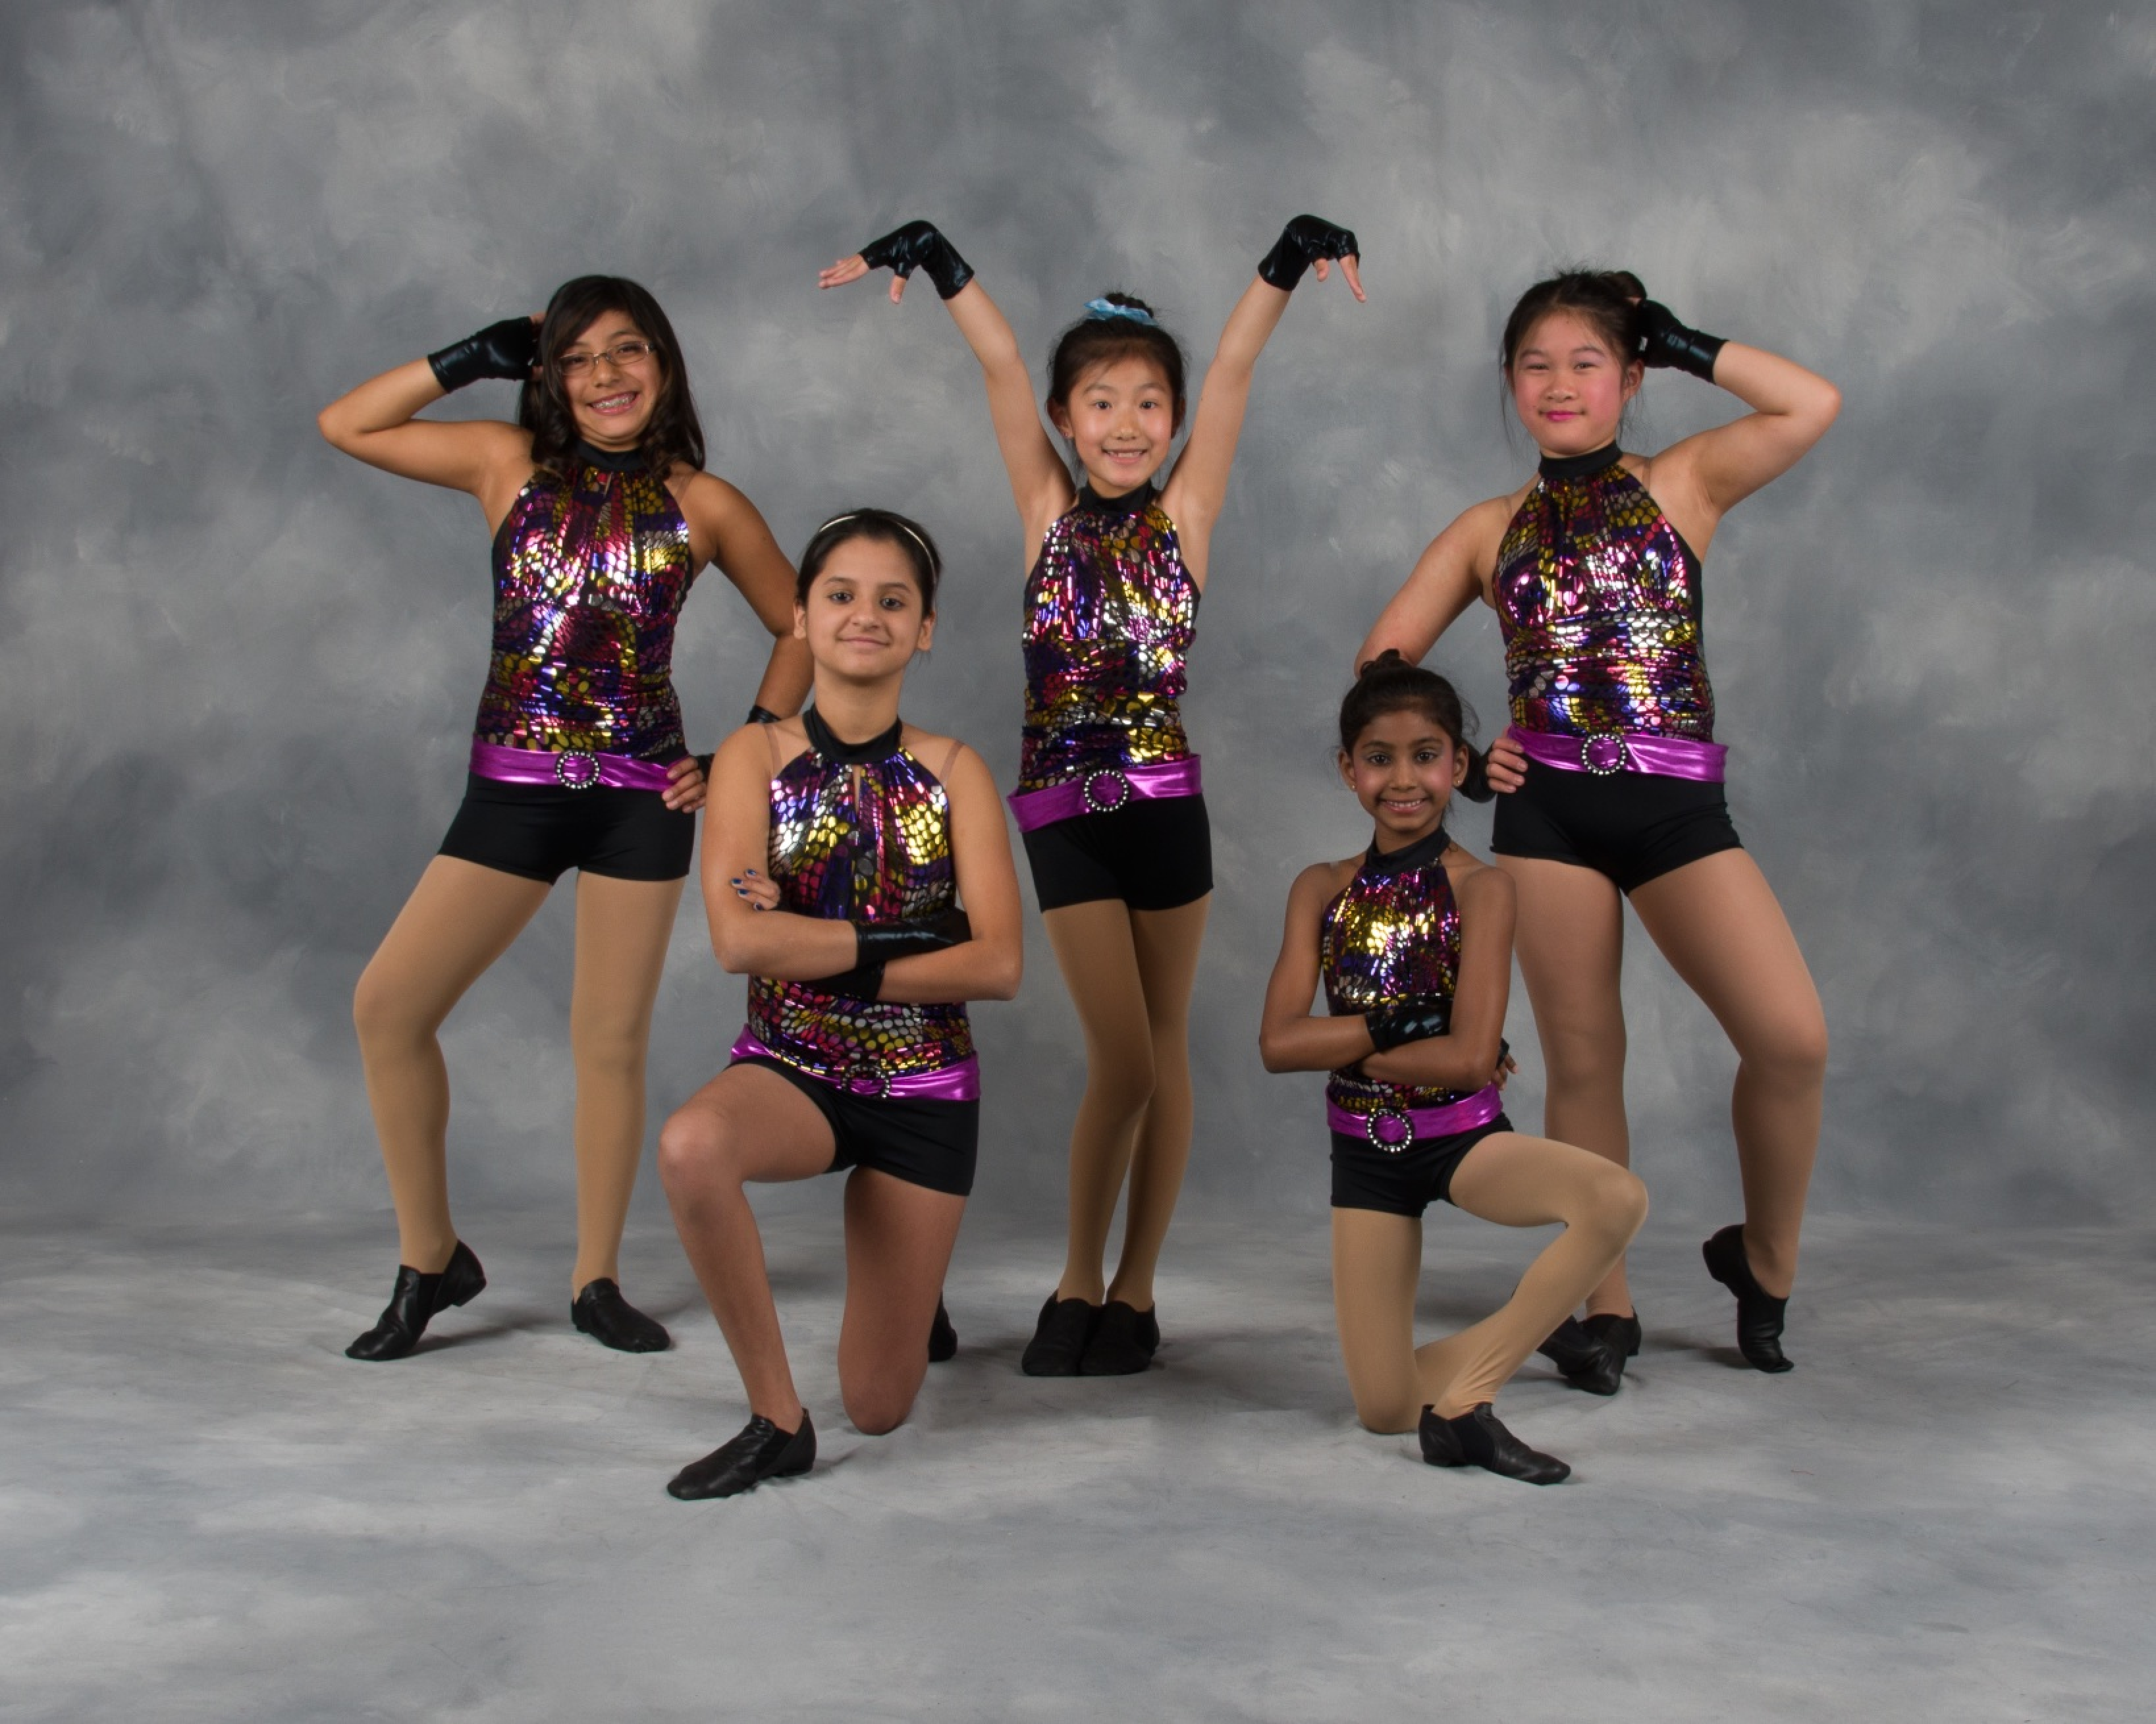 dance classes for kids and adults near me in edison nj